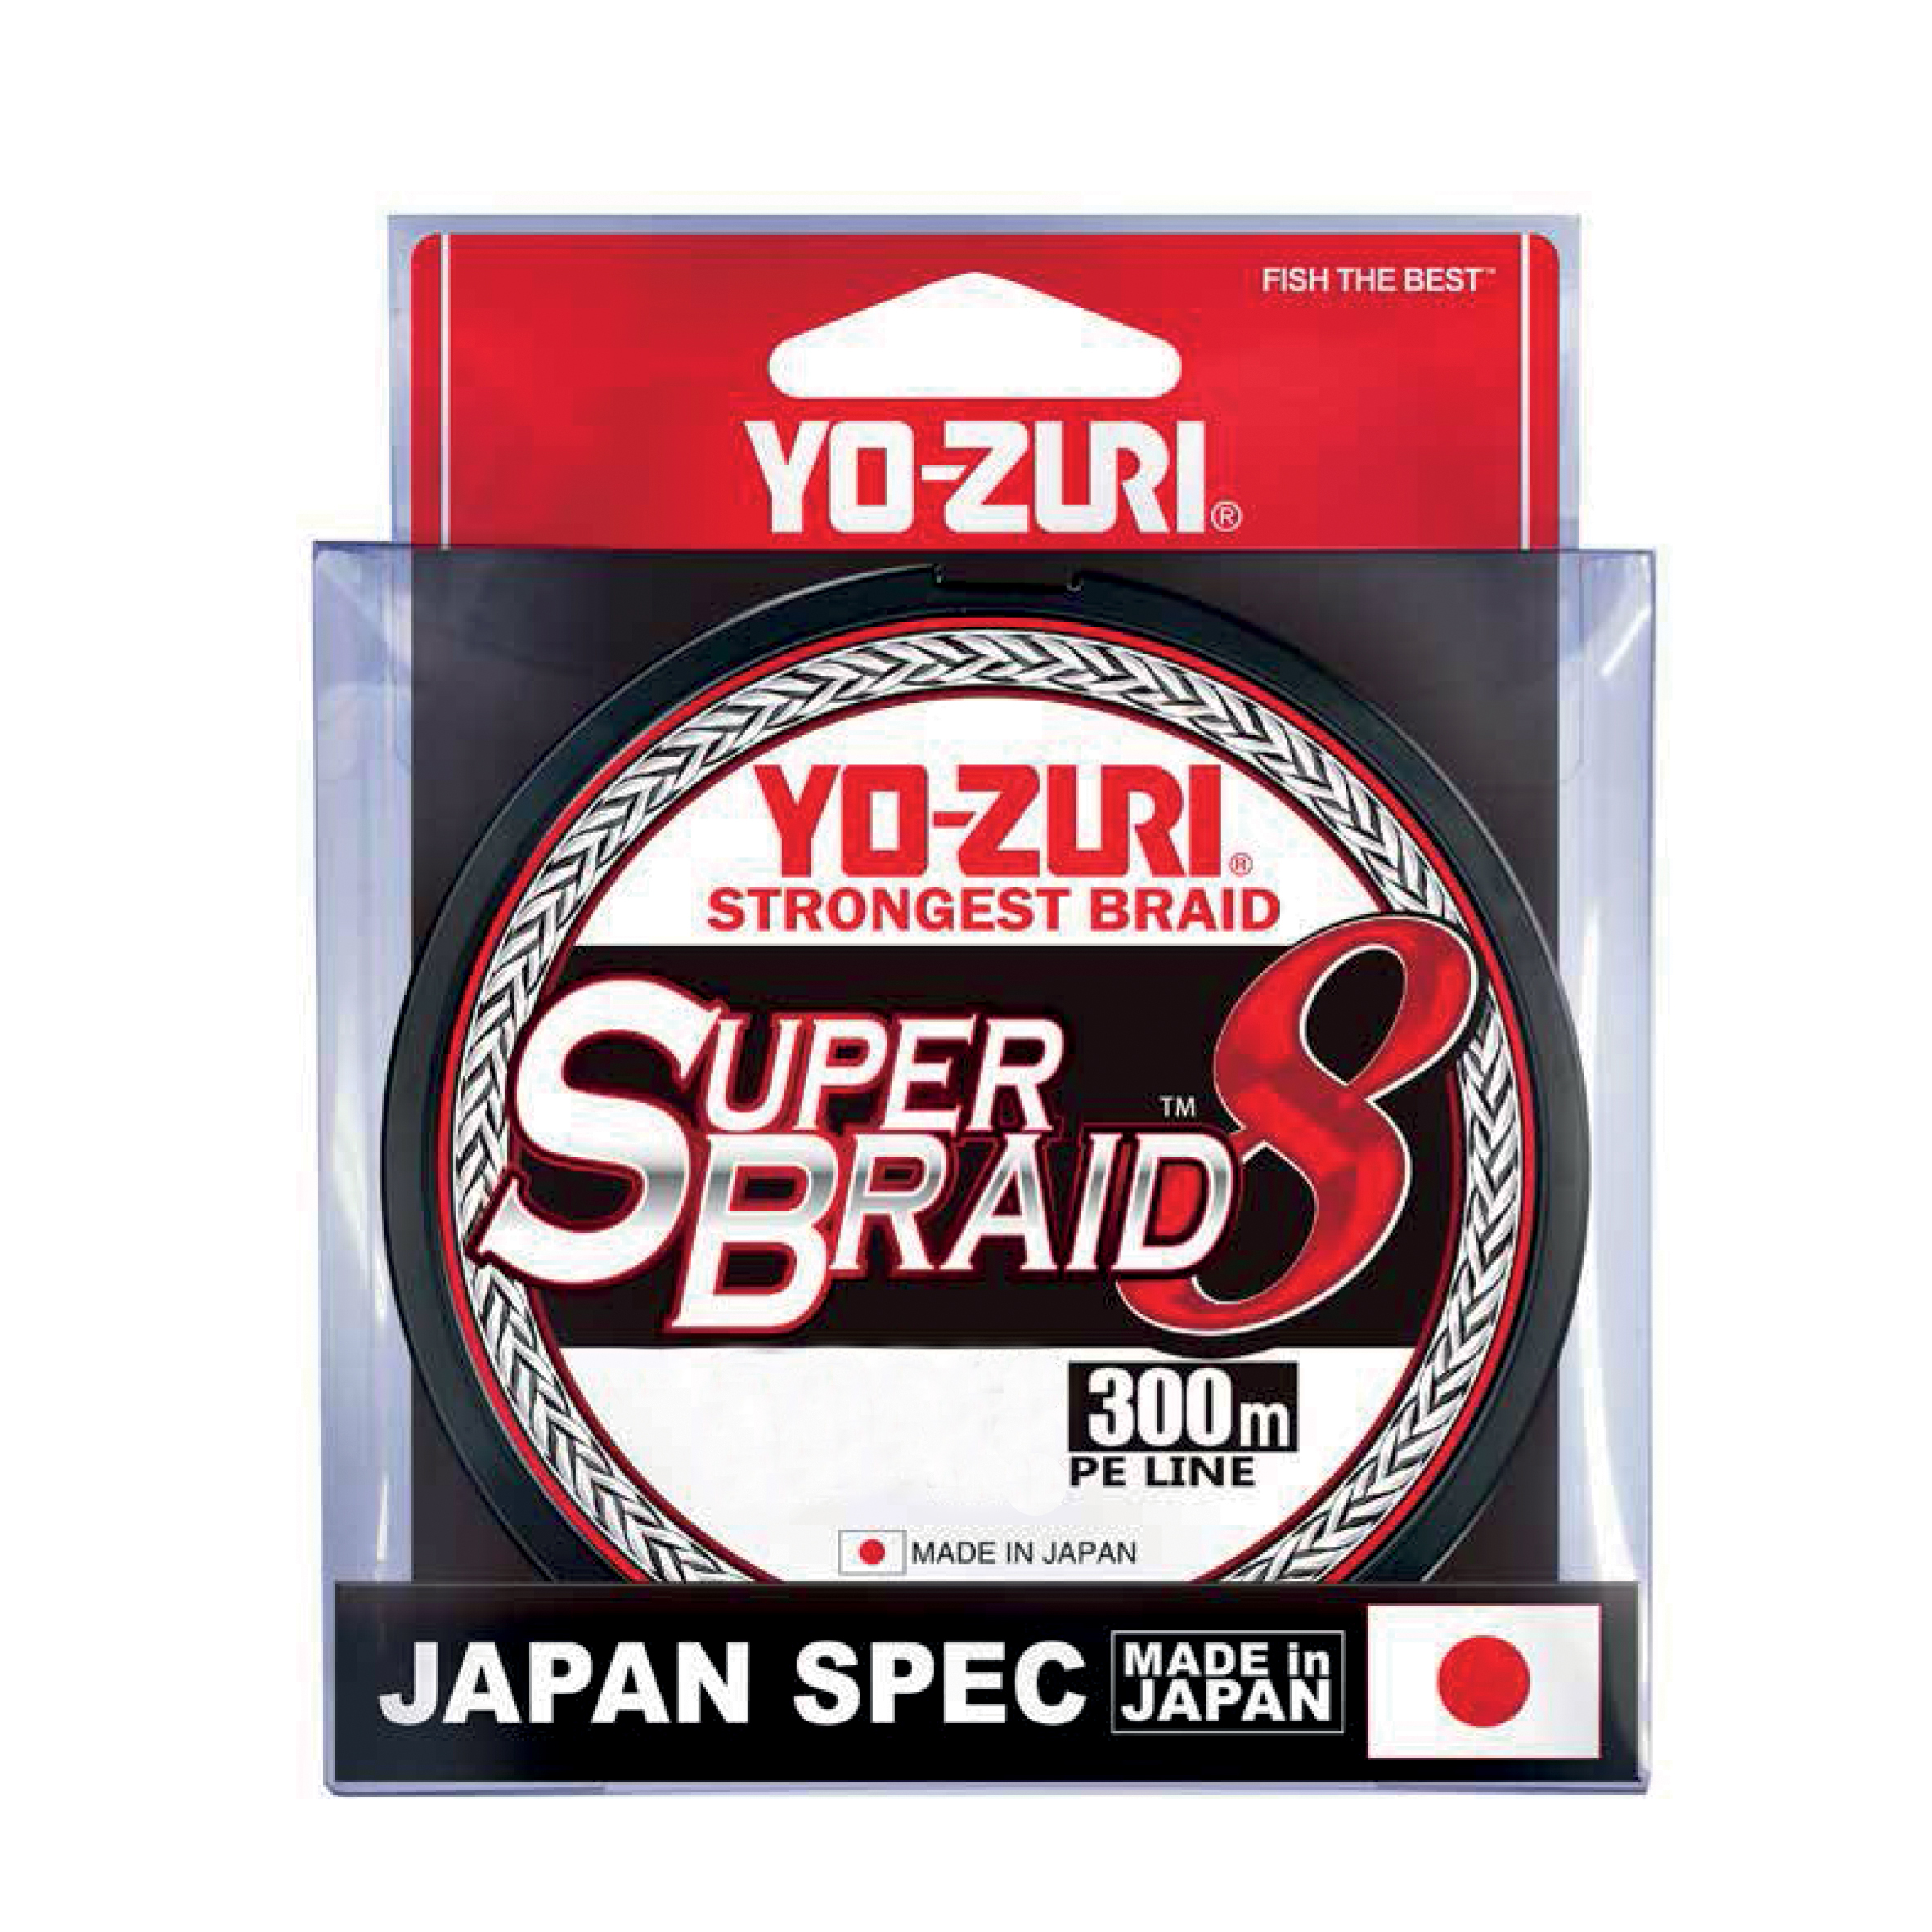 Yo-Zuri Super Bread